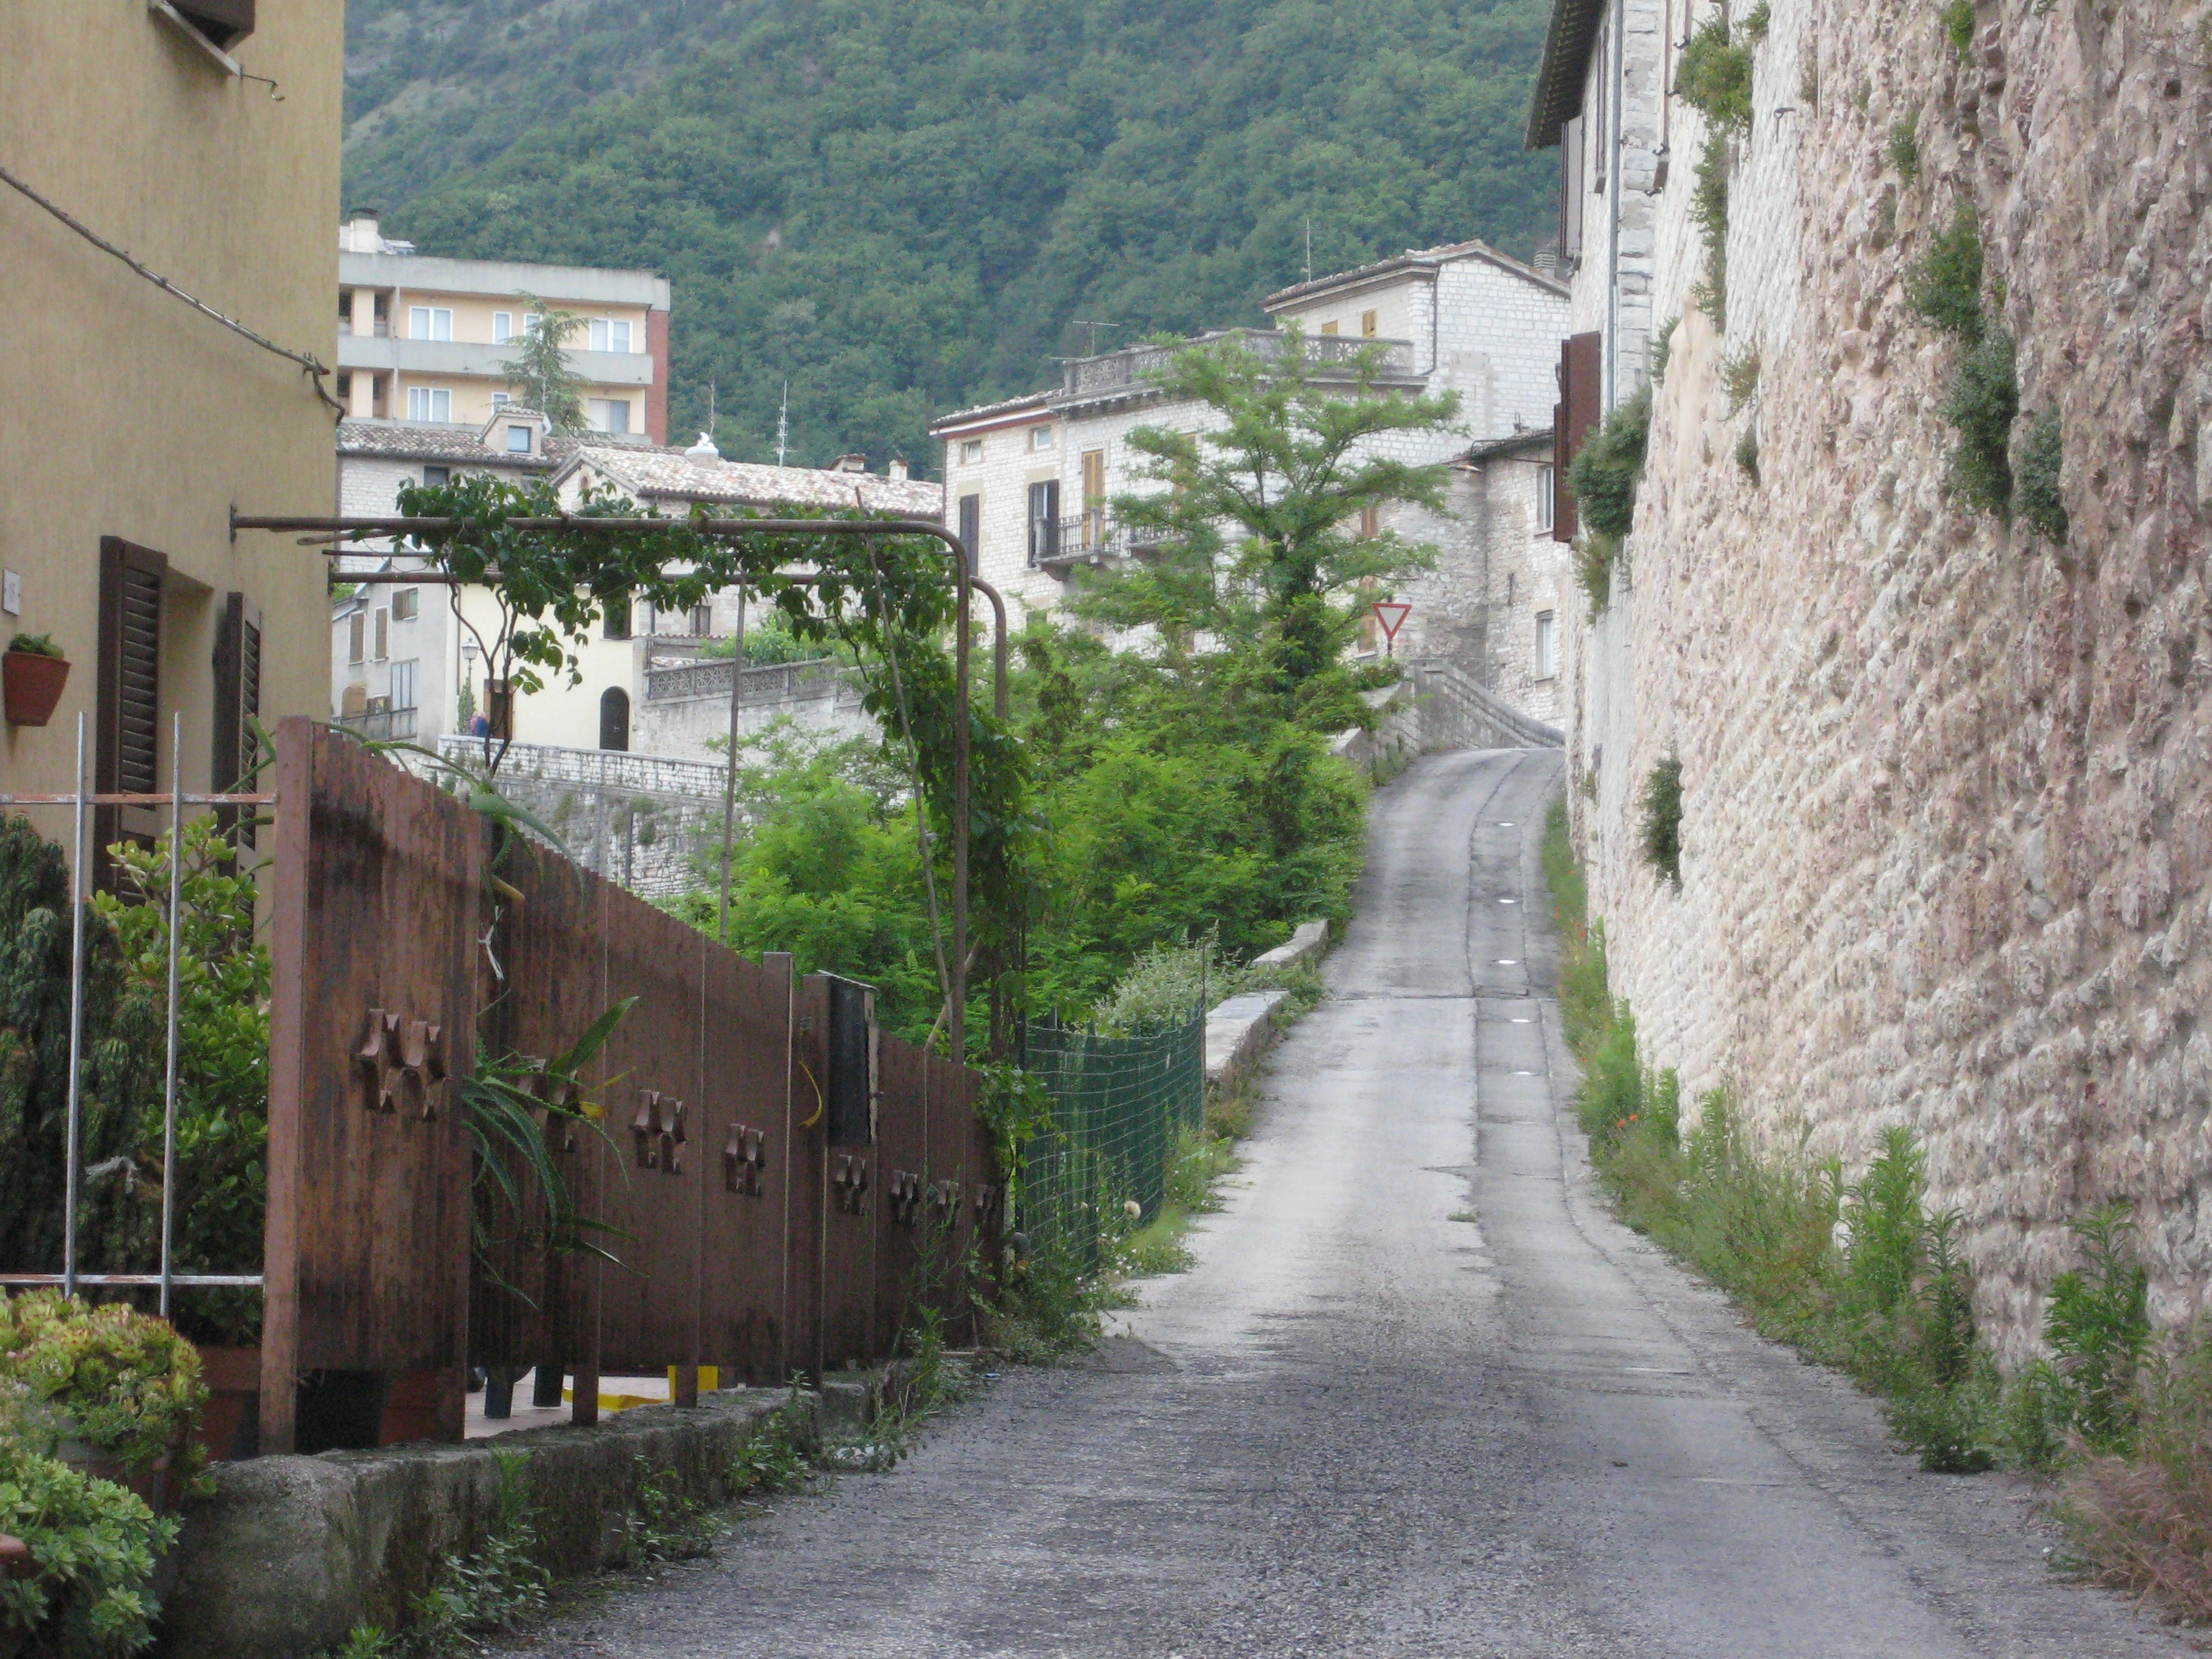 A narrow, paved road in Italy leads upwards and away with a white stone wall to the right and green trees to left.